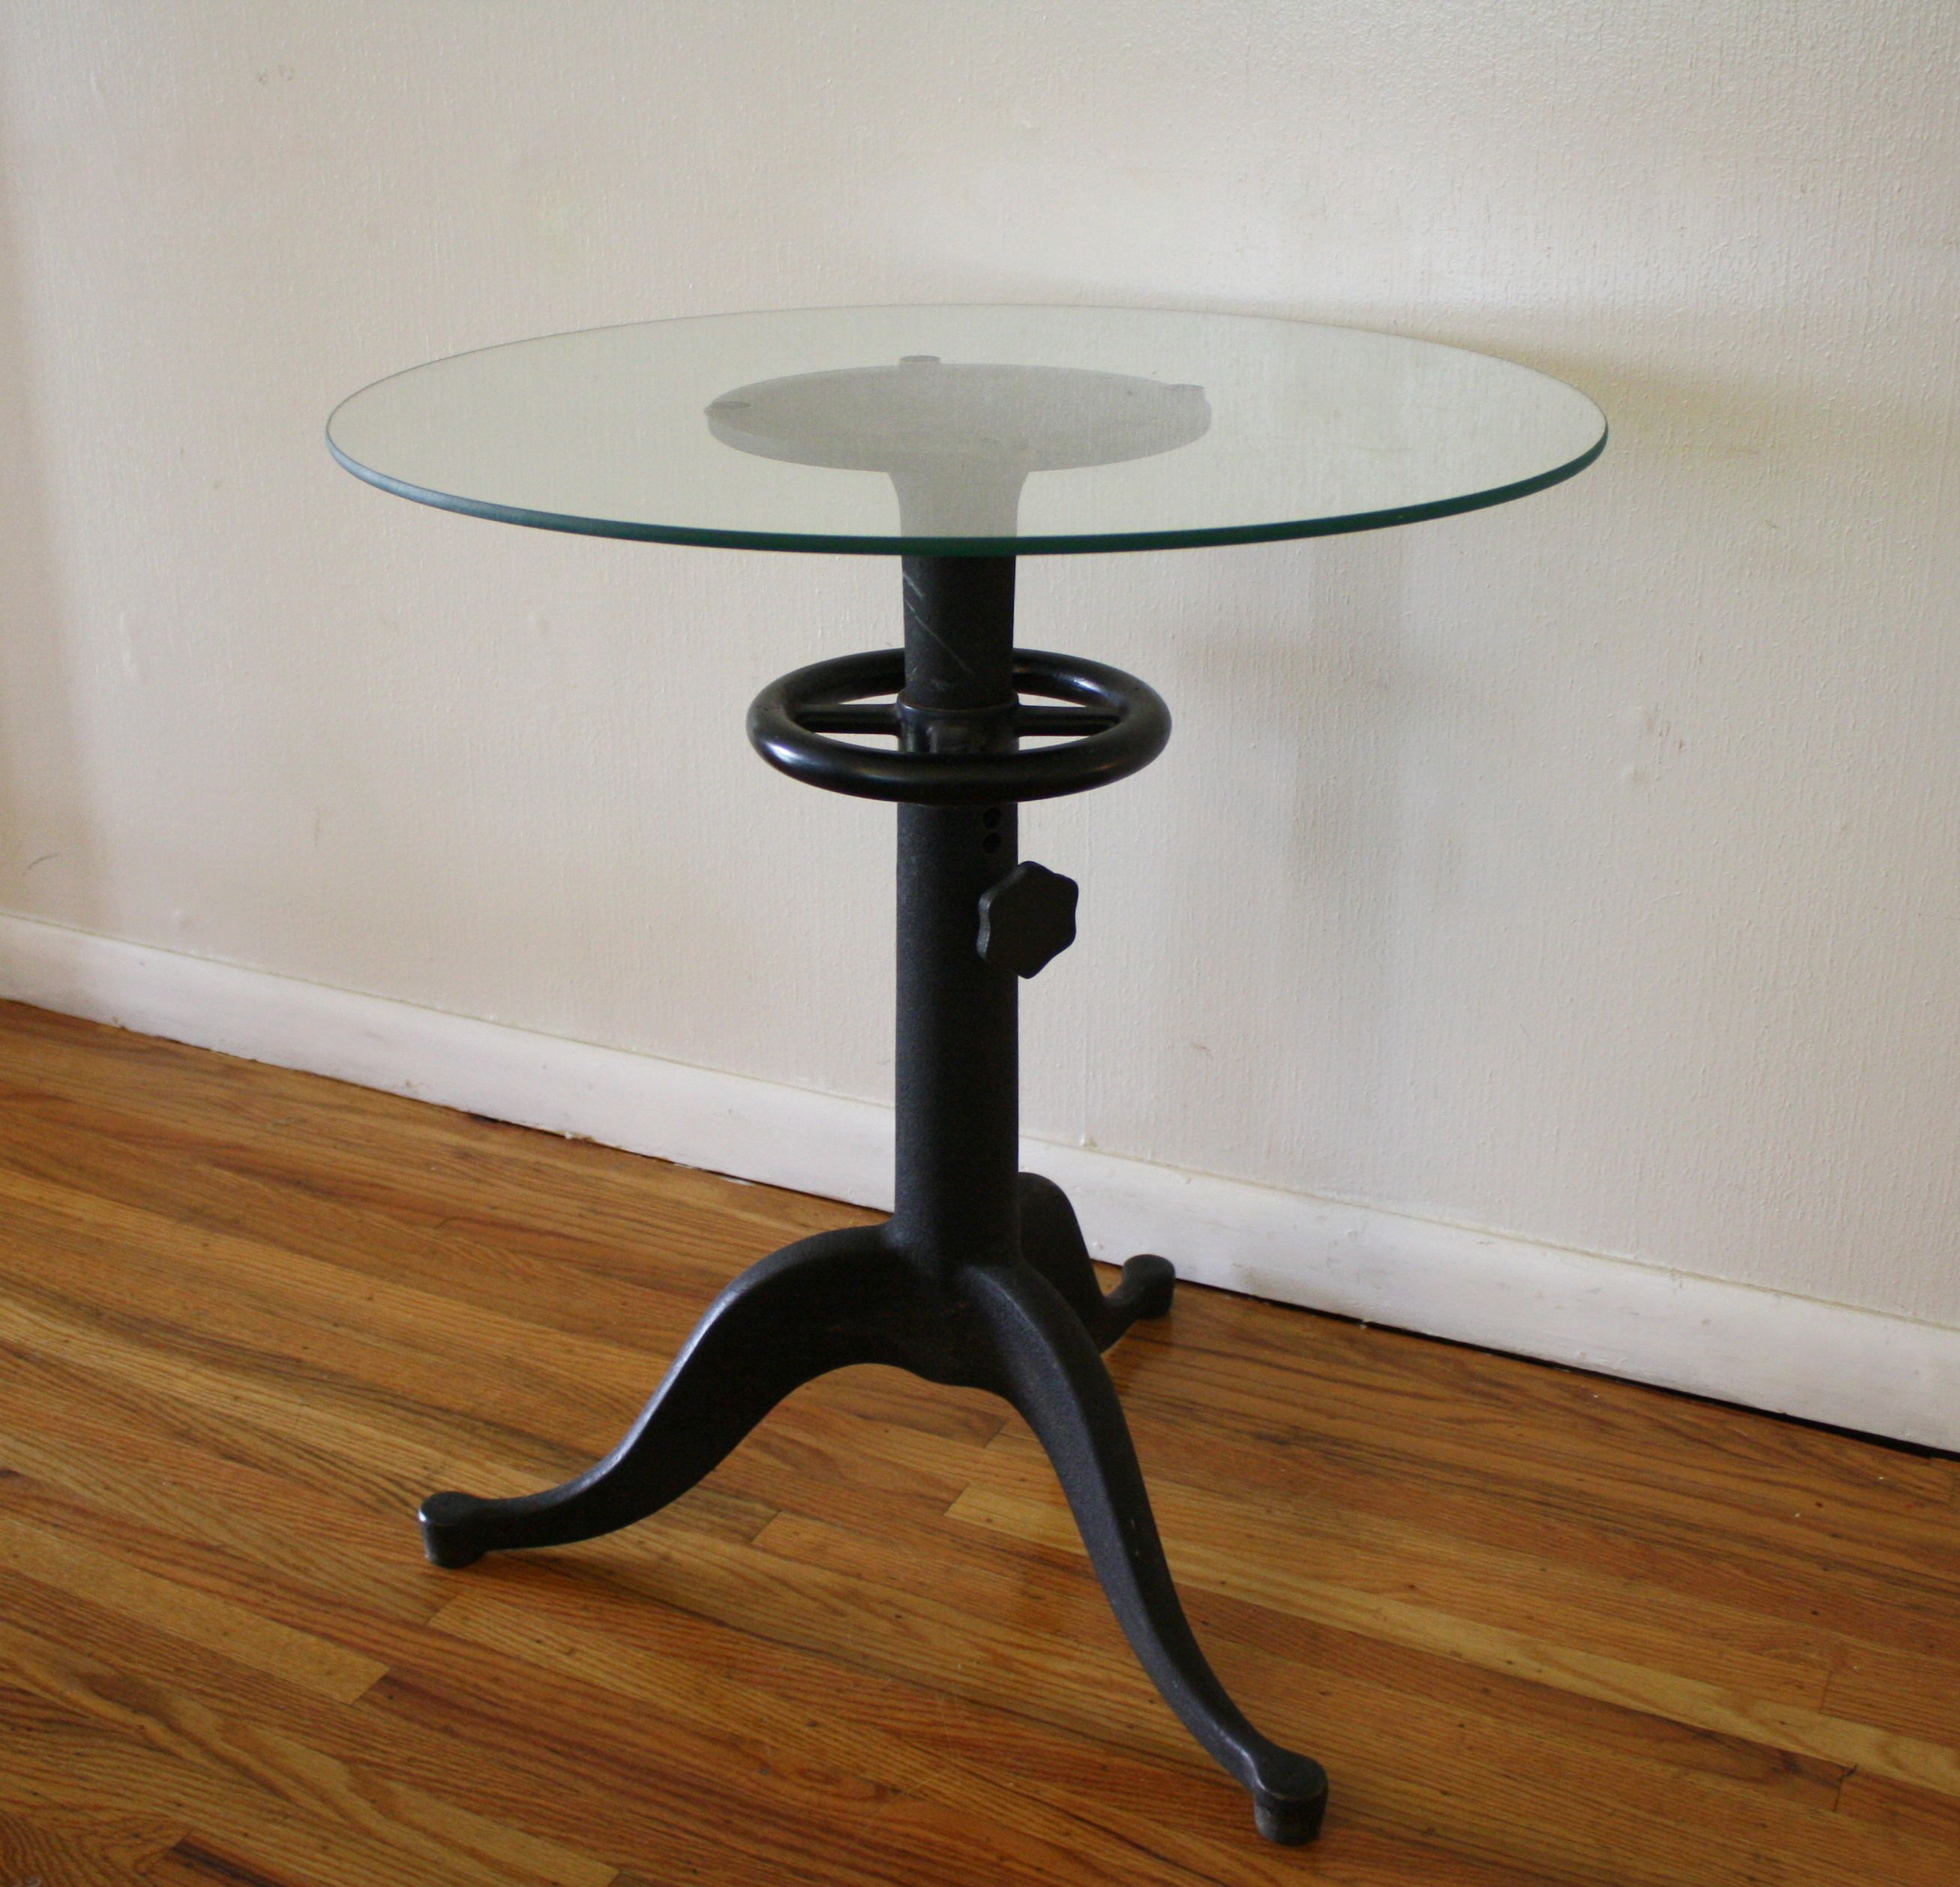 Antique Cast Iron Table With Glass Top Steampunk Chic Picked Iron Table Side Table Antique Cast Iron [ 2516 x 2614 Pixel ]